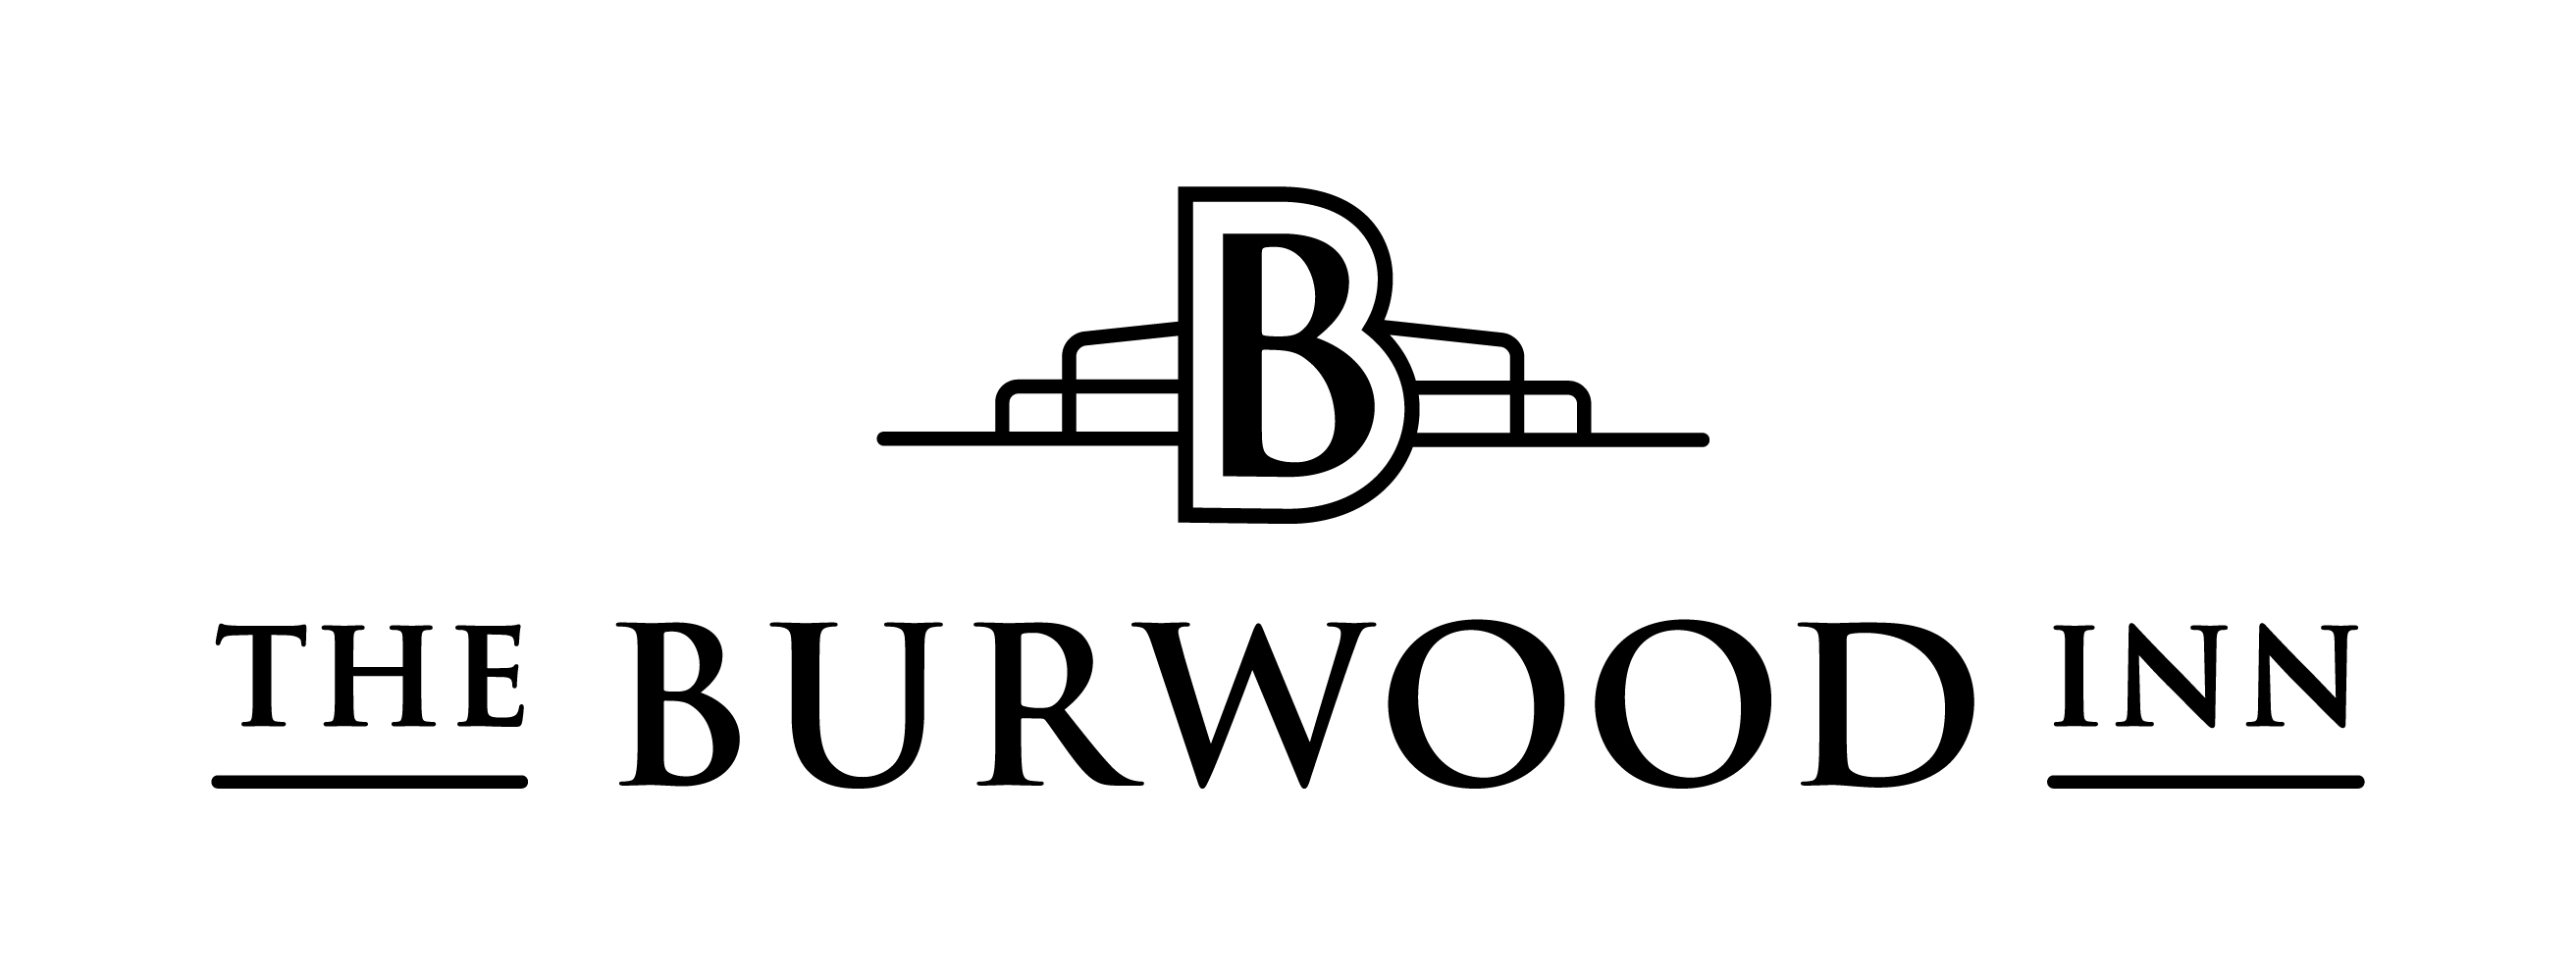 Burwood Inn Hotel - Accommodation Australia